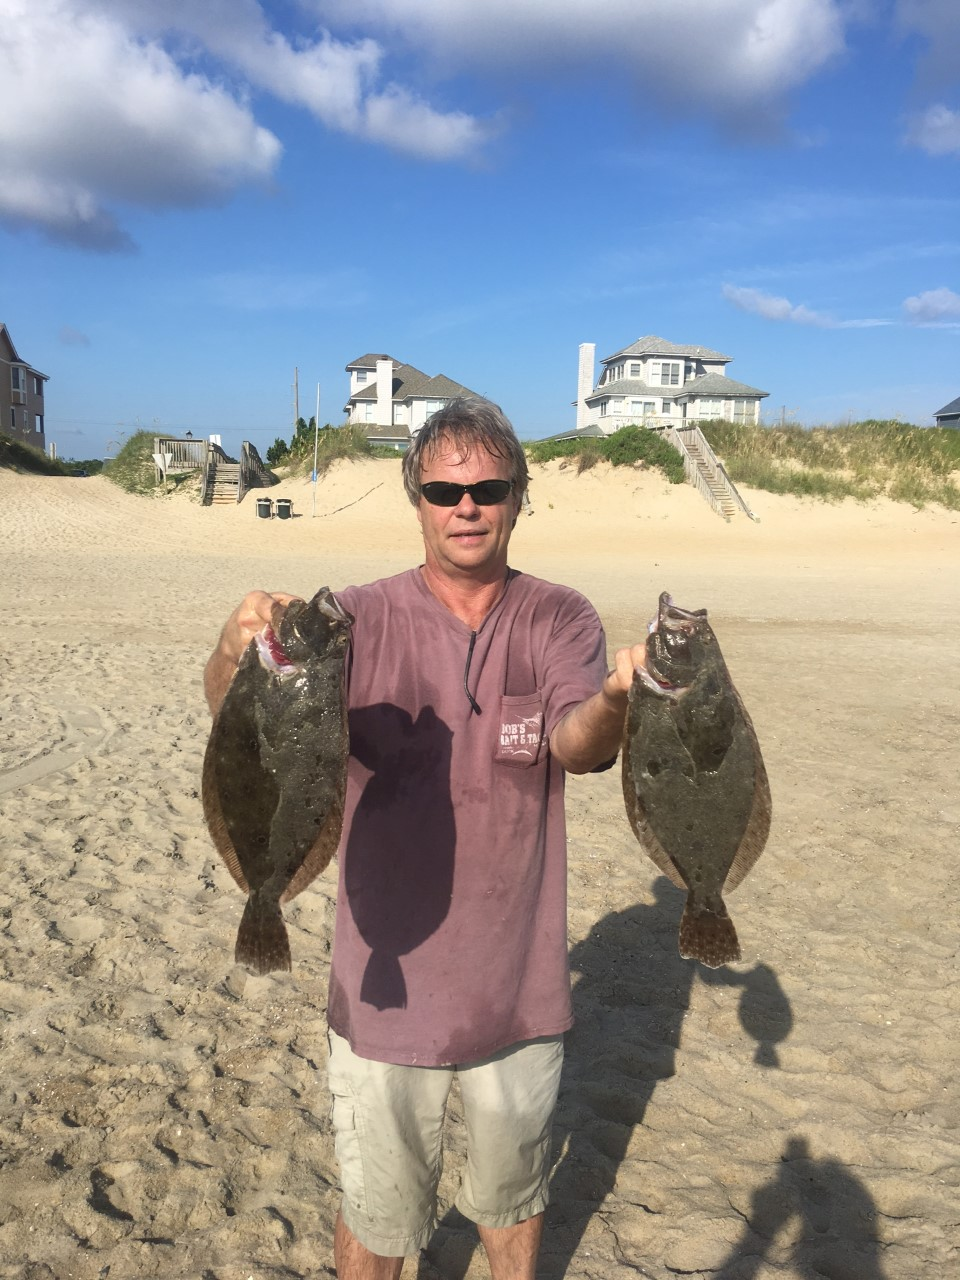 Bobs Surf fishing classes Outer Banks.